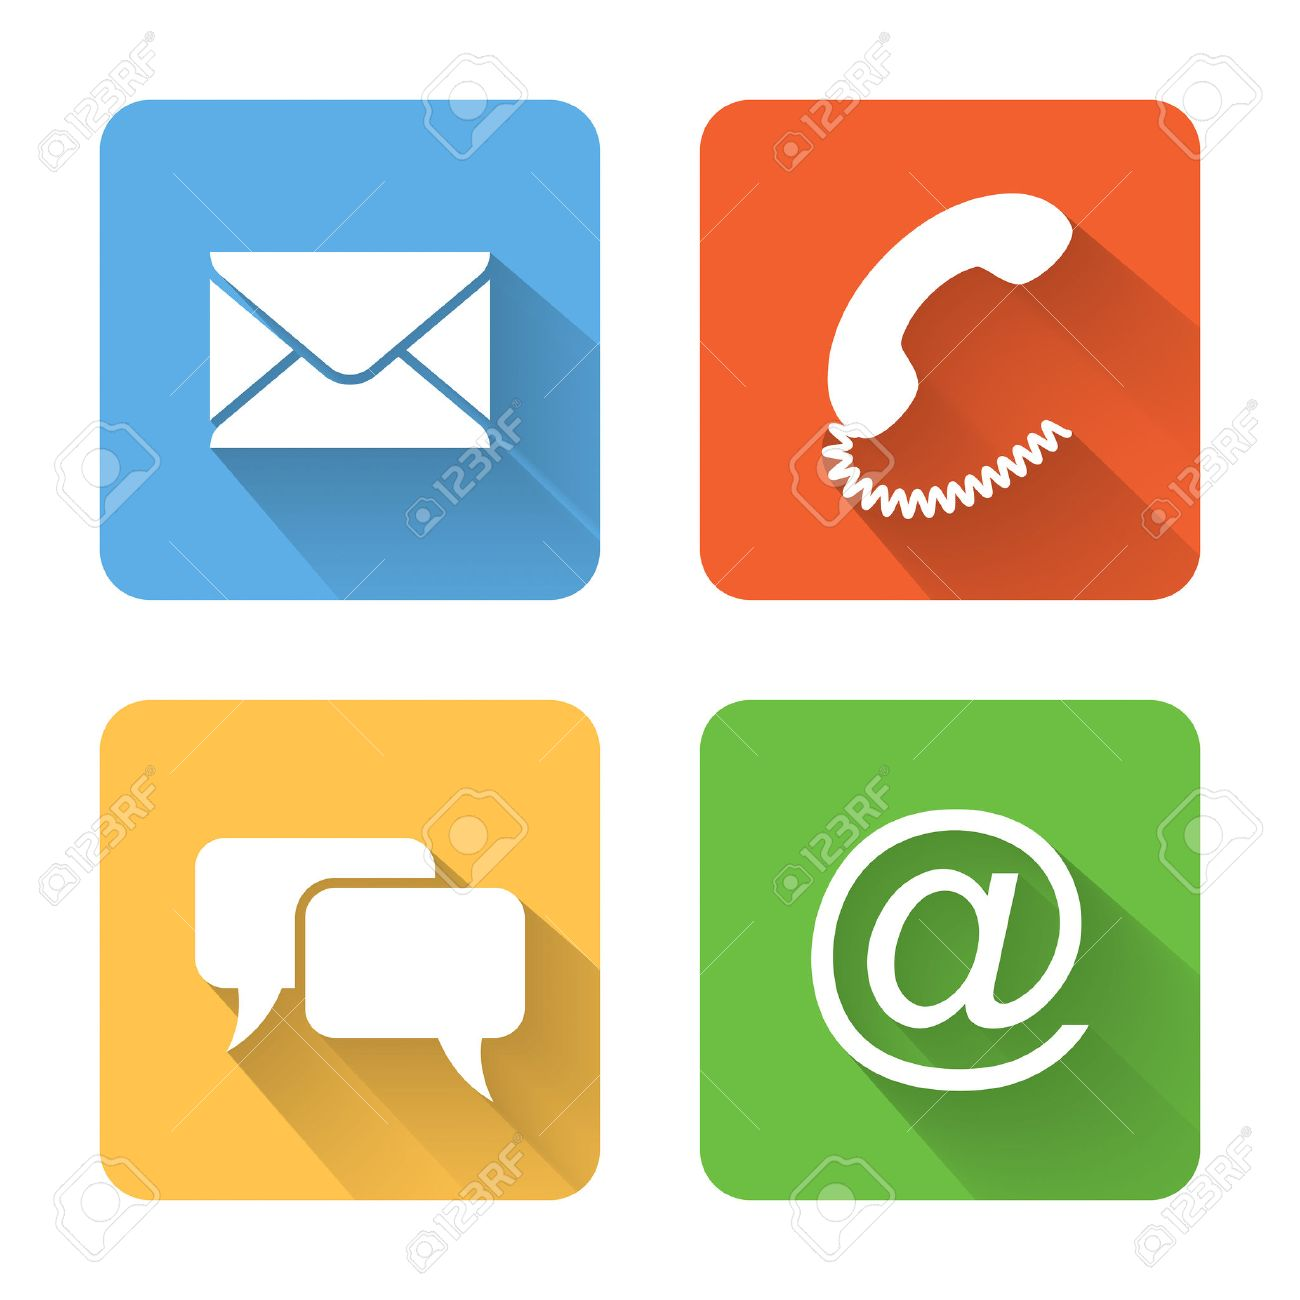 Flat contacts icons. - 31663476